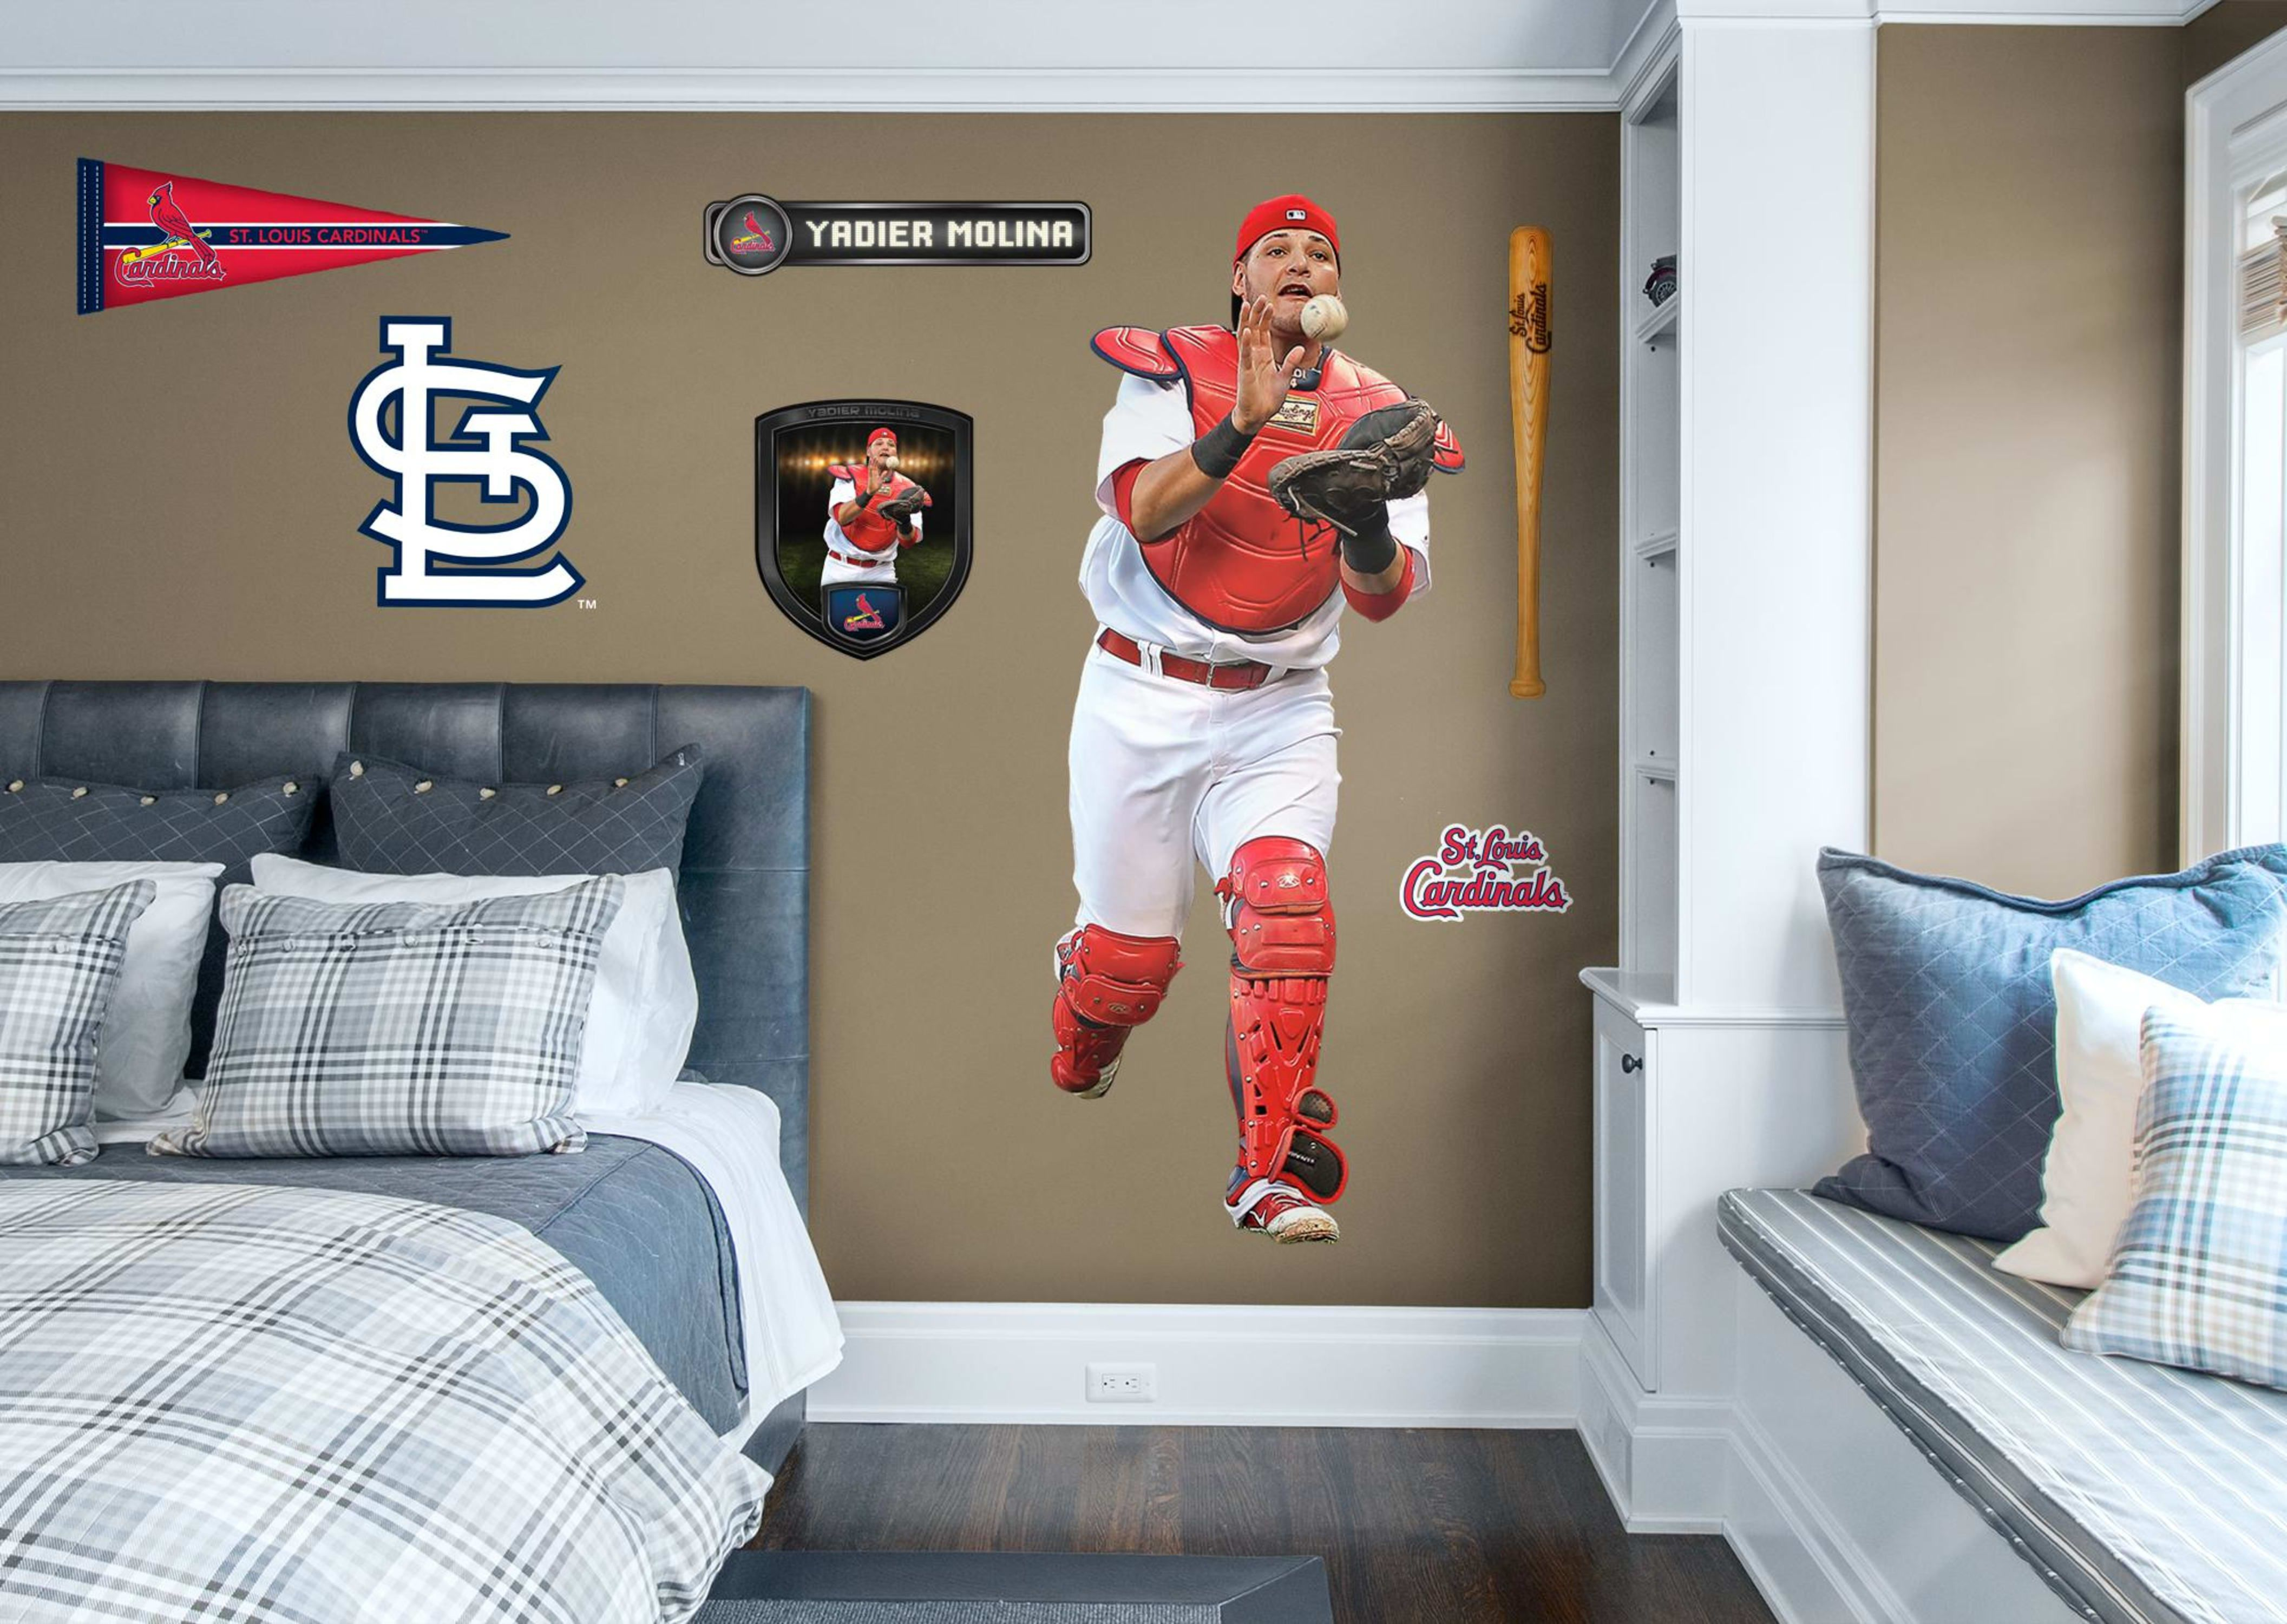 Boys Baseball Bedroom Yadier Molina From The St Louis Cardinals Transform Your Ballplayers